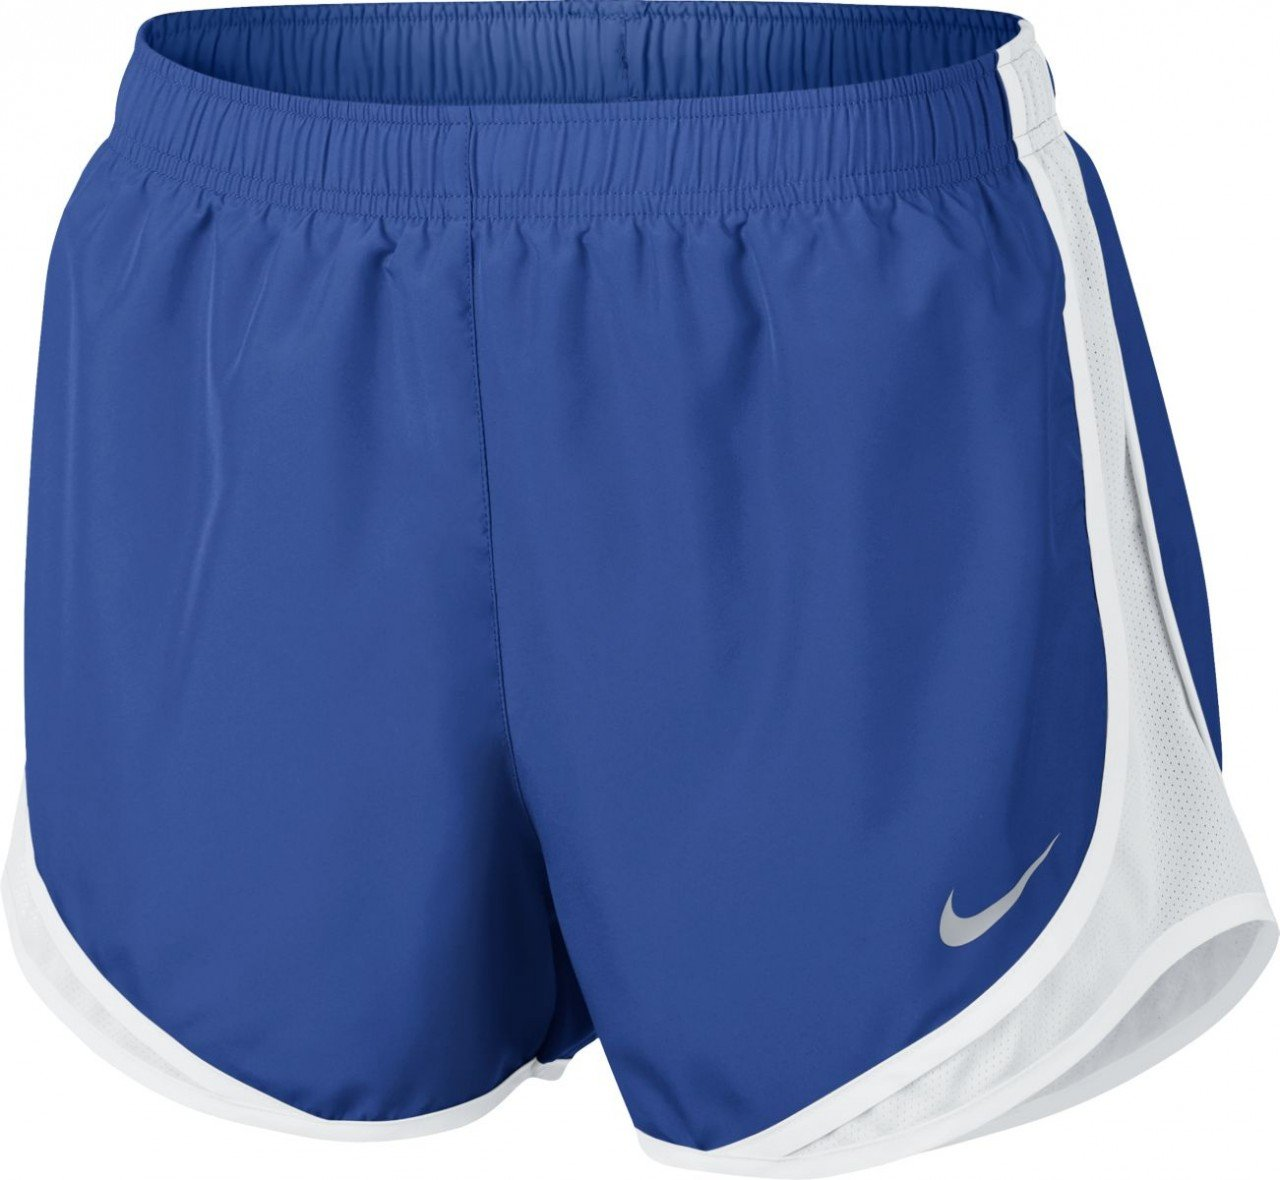 Nike Women's Dry Tempo Short, Game Royal/White/Wolf Grey, X-Small